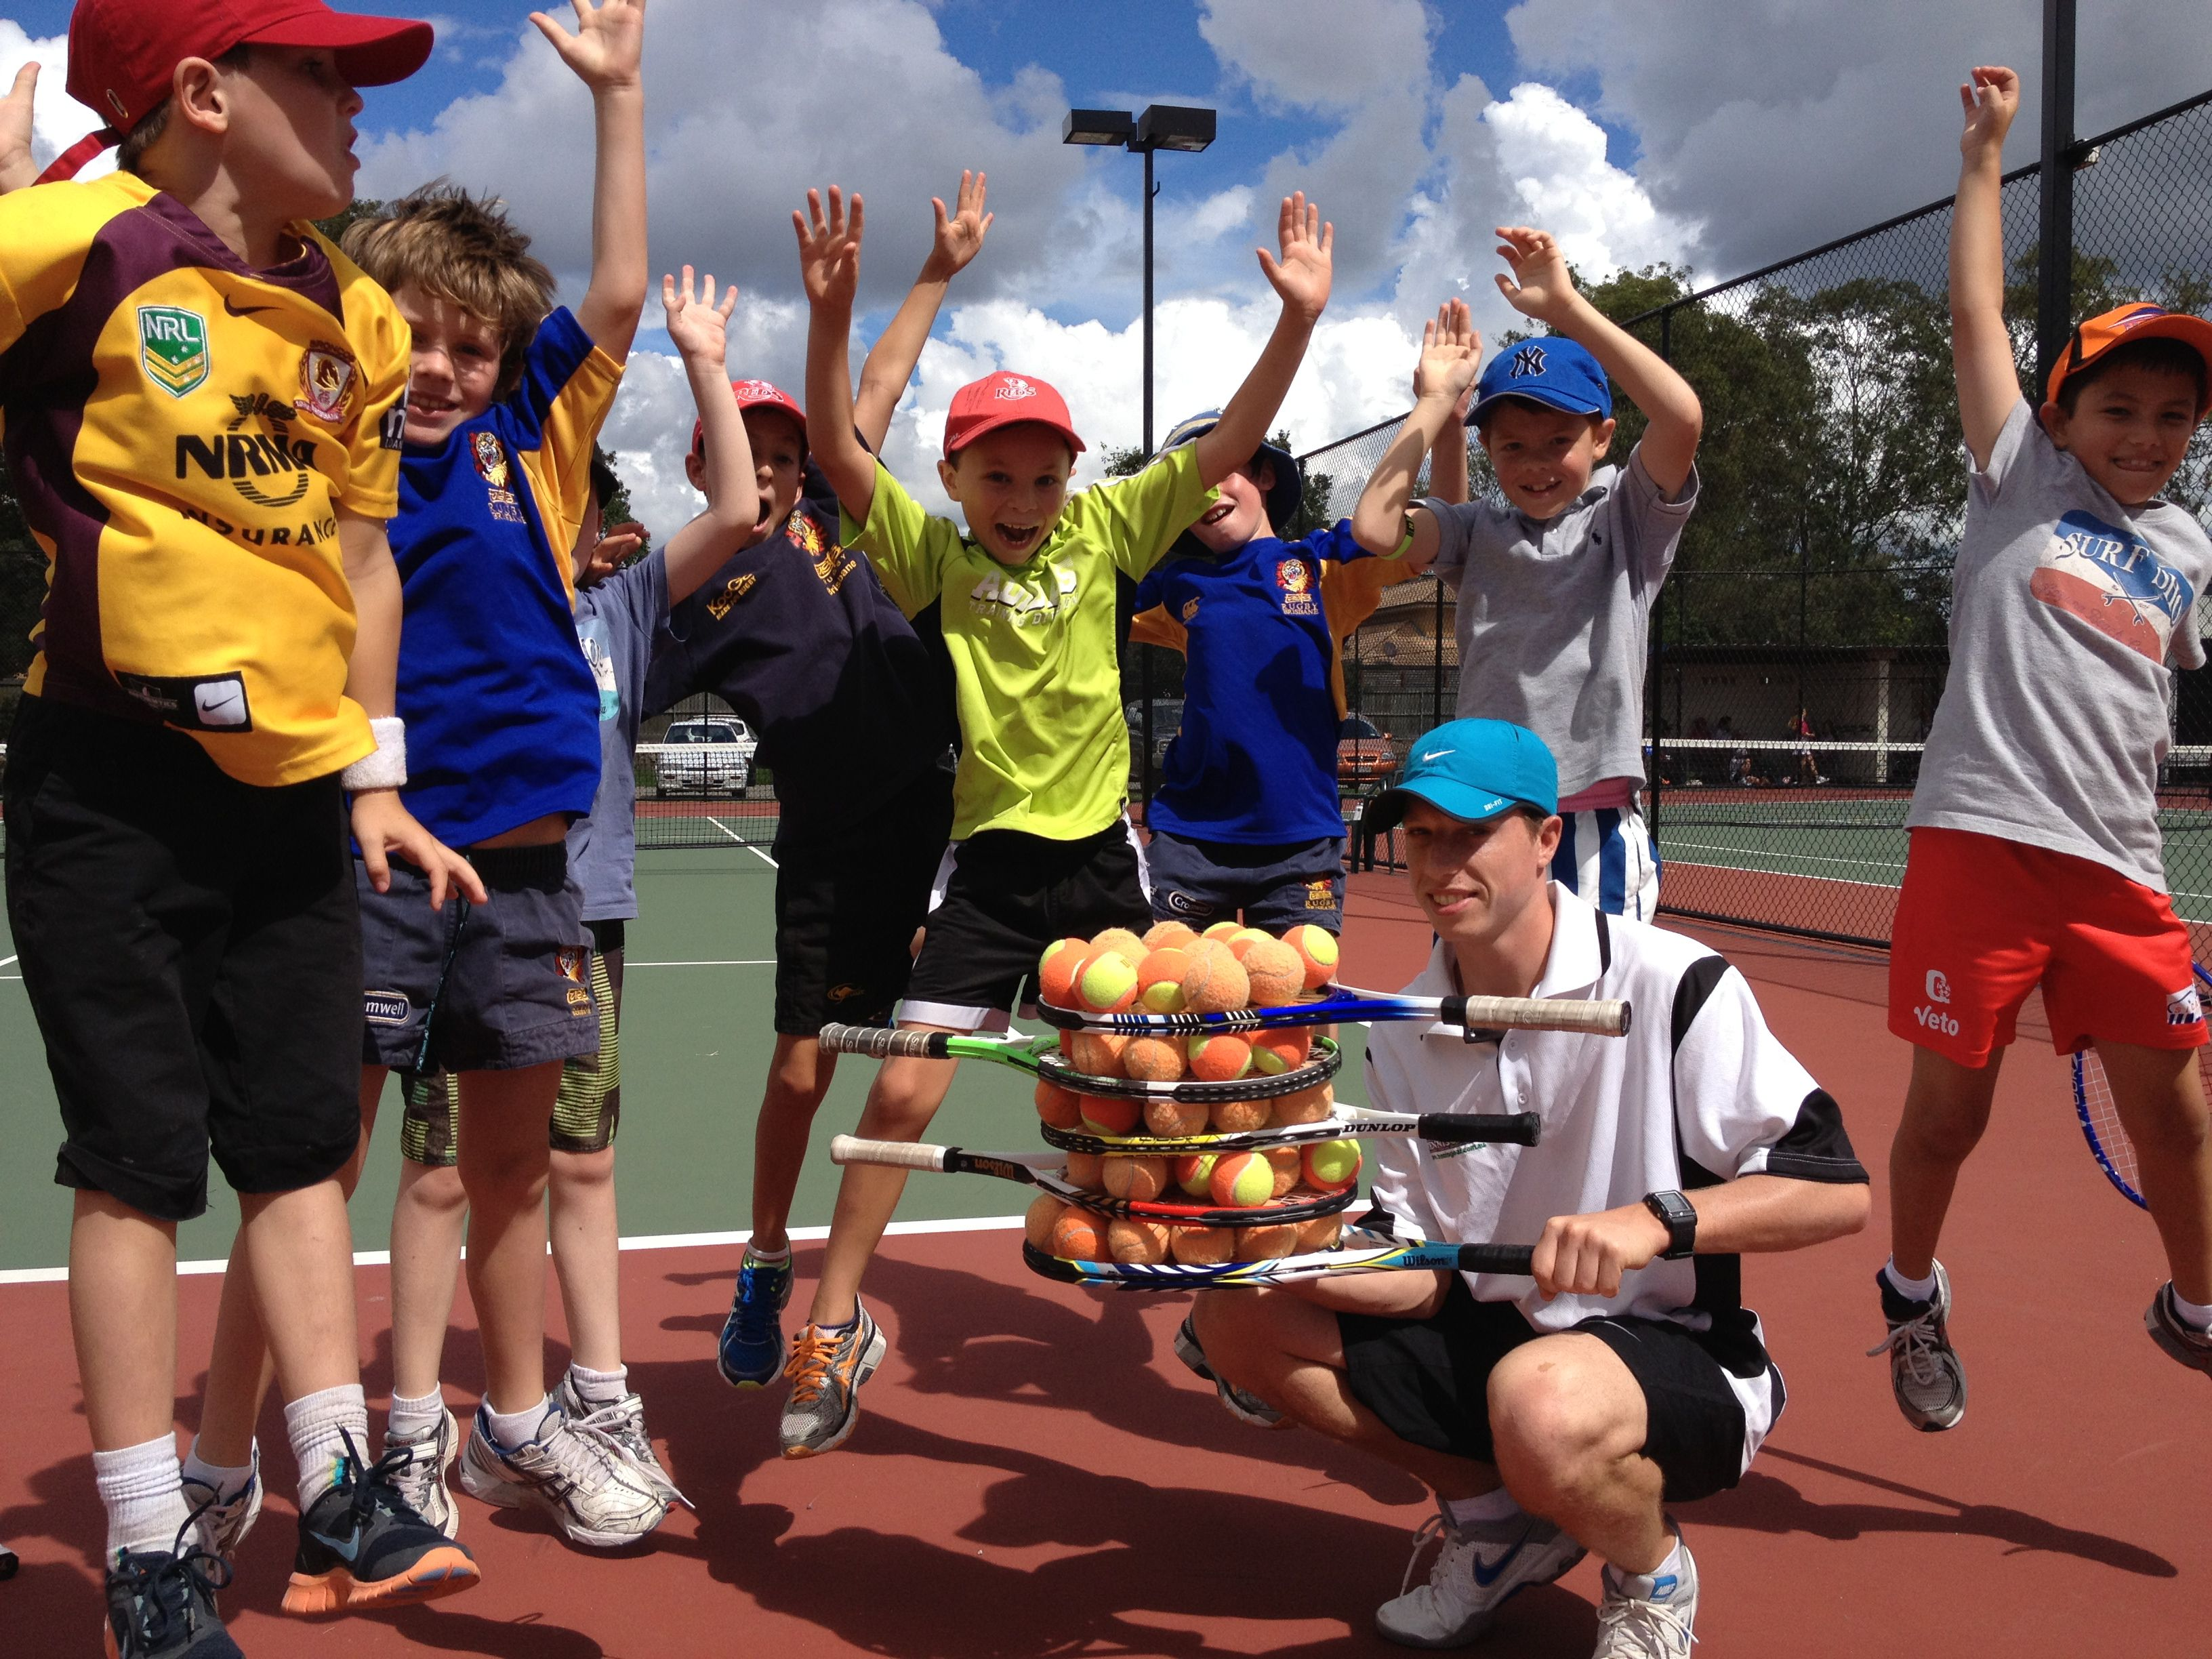 Morningside Tennis Centre plays host to some of Brisbane's most popular school holiday tennis activities.